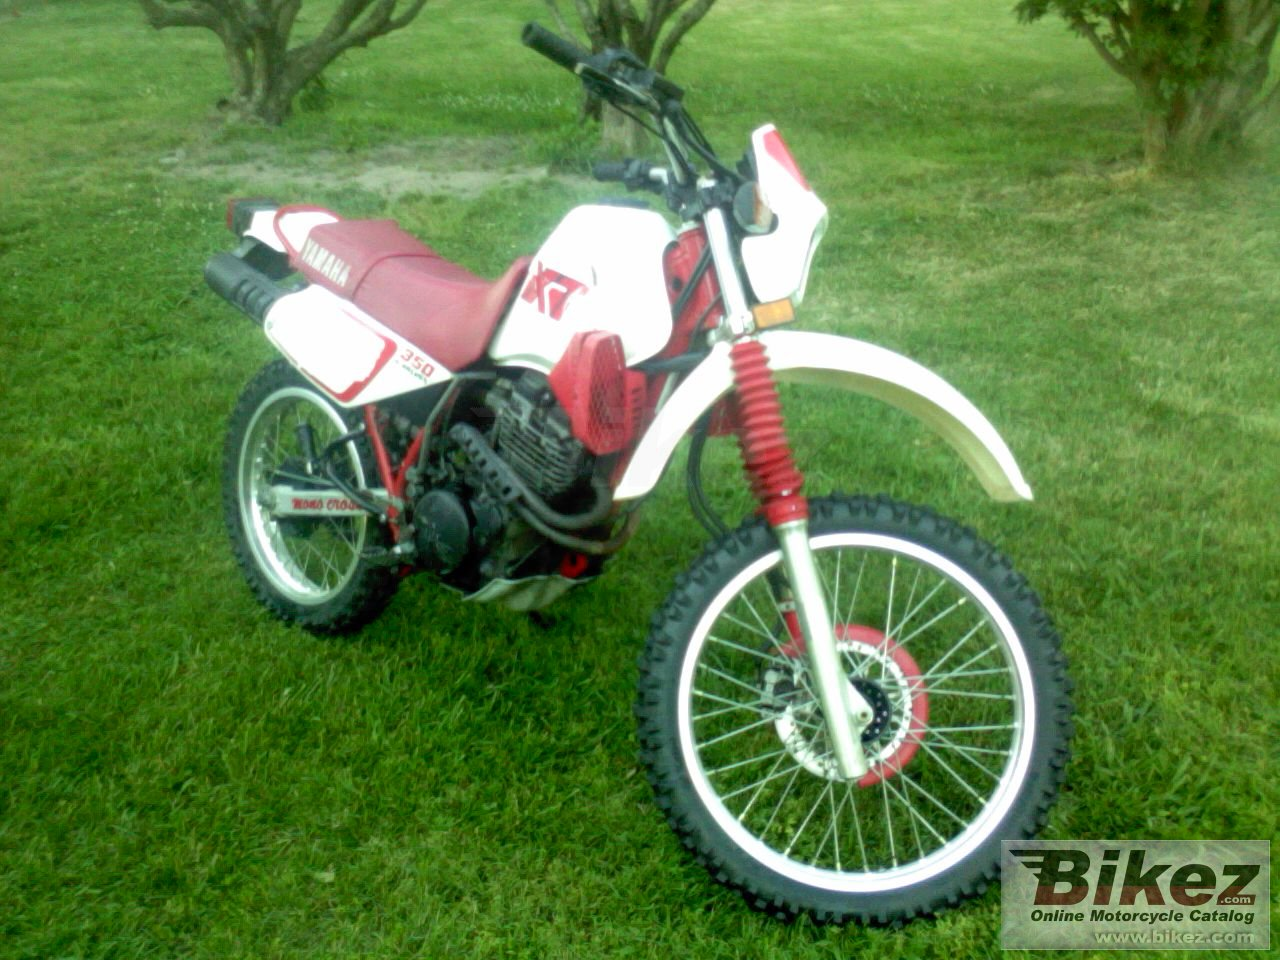 Big  xt 350 picture and wallpaper from Bikez.com